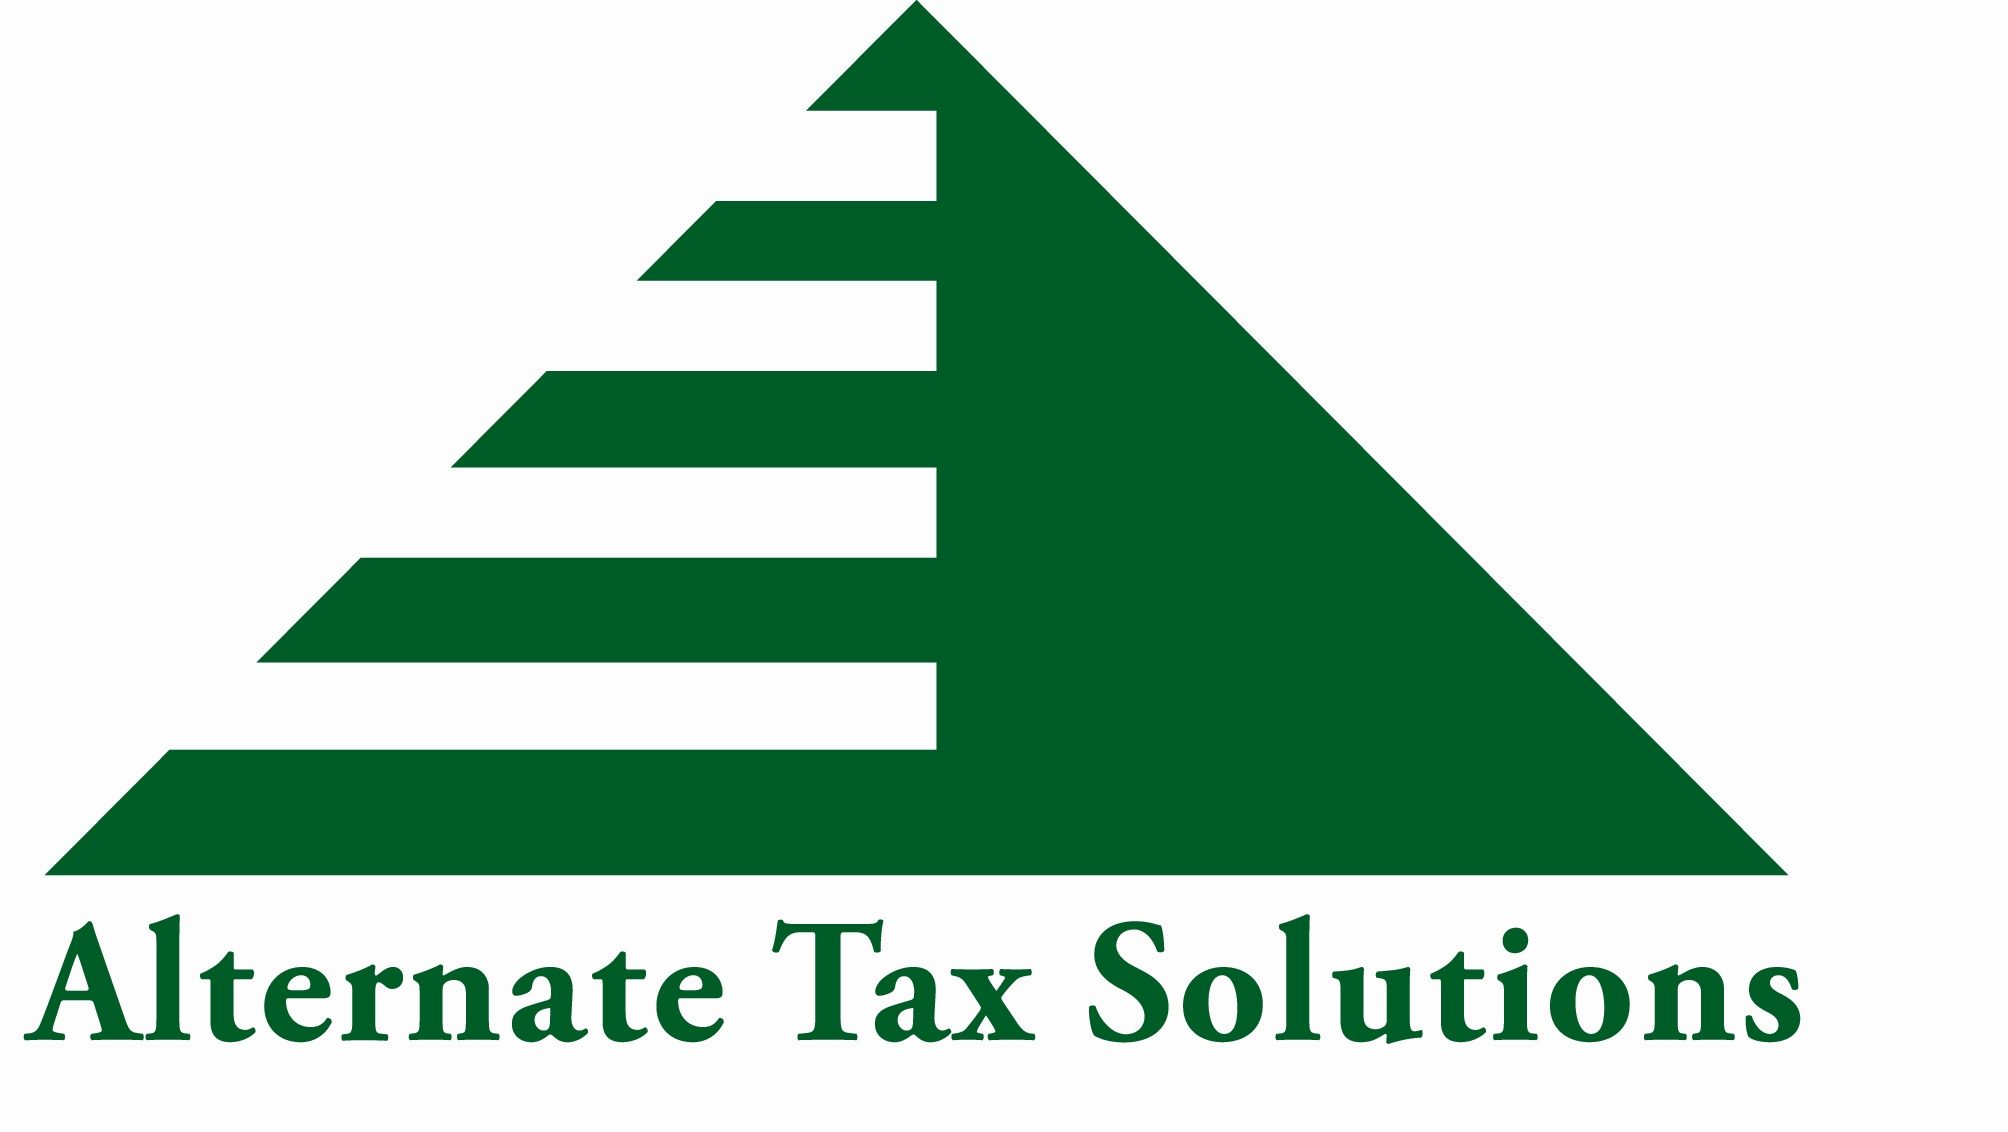 Alternate%20Tax%20Solutions%20Logo.jpg